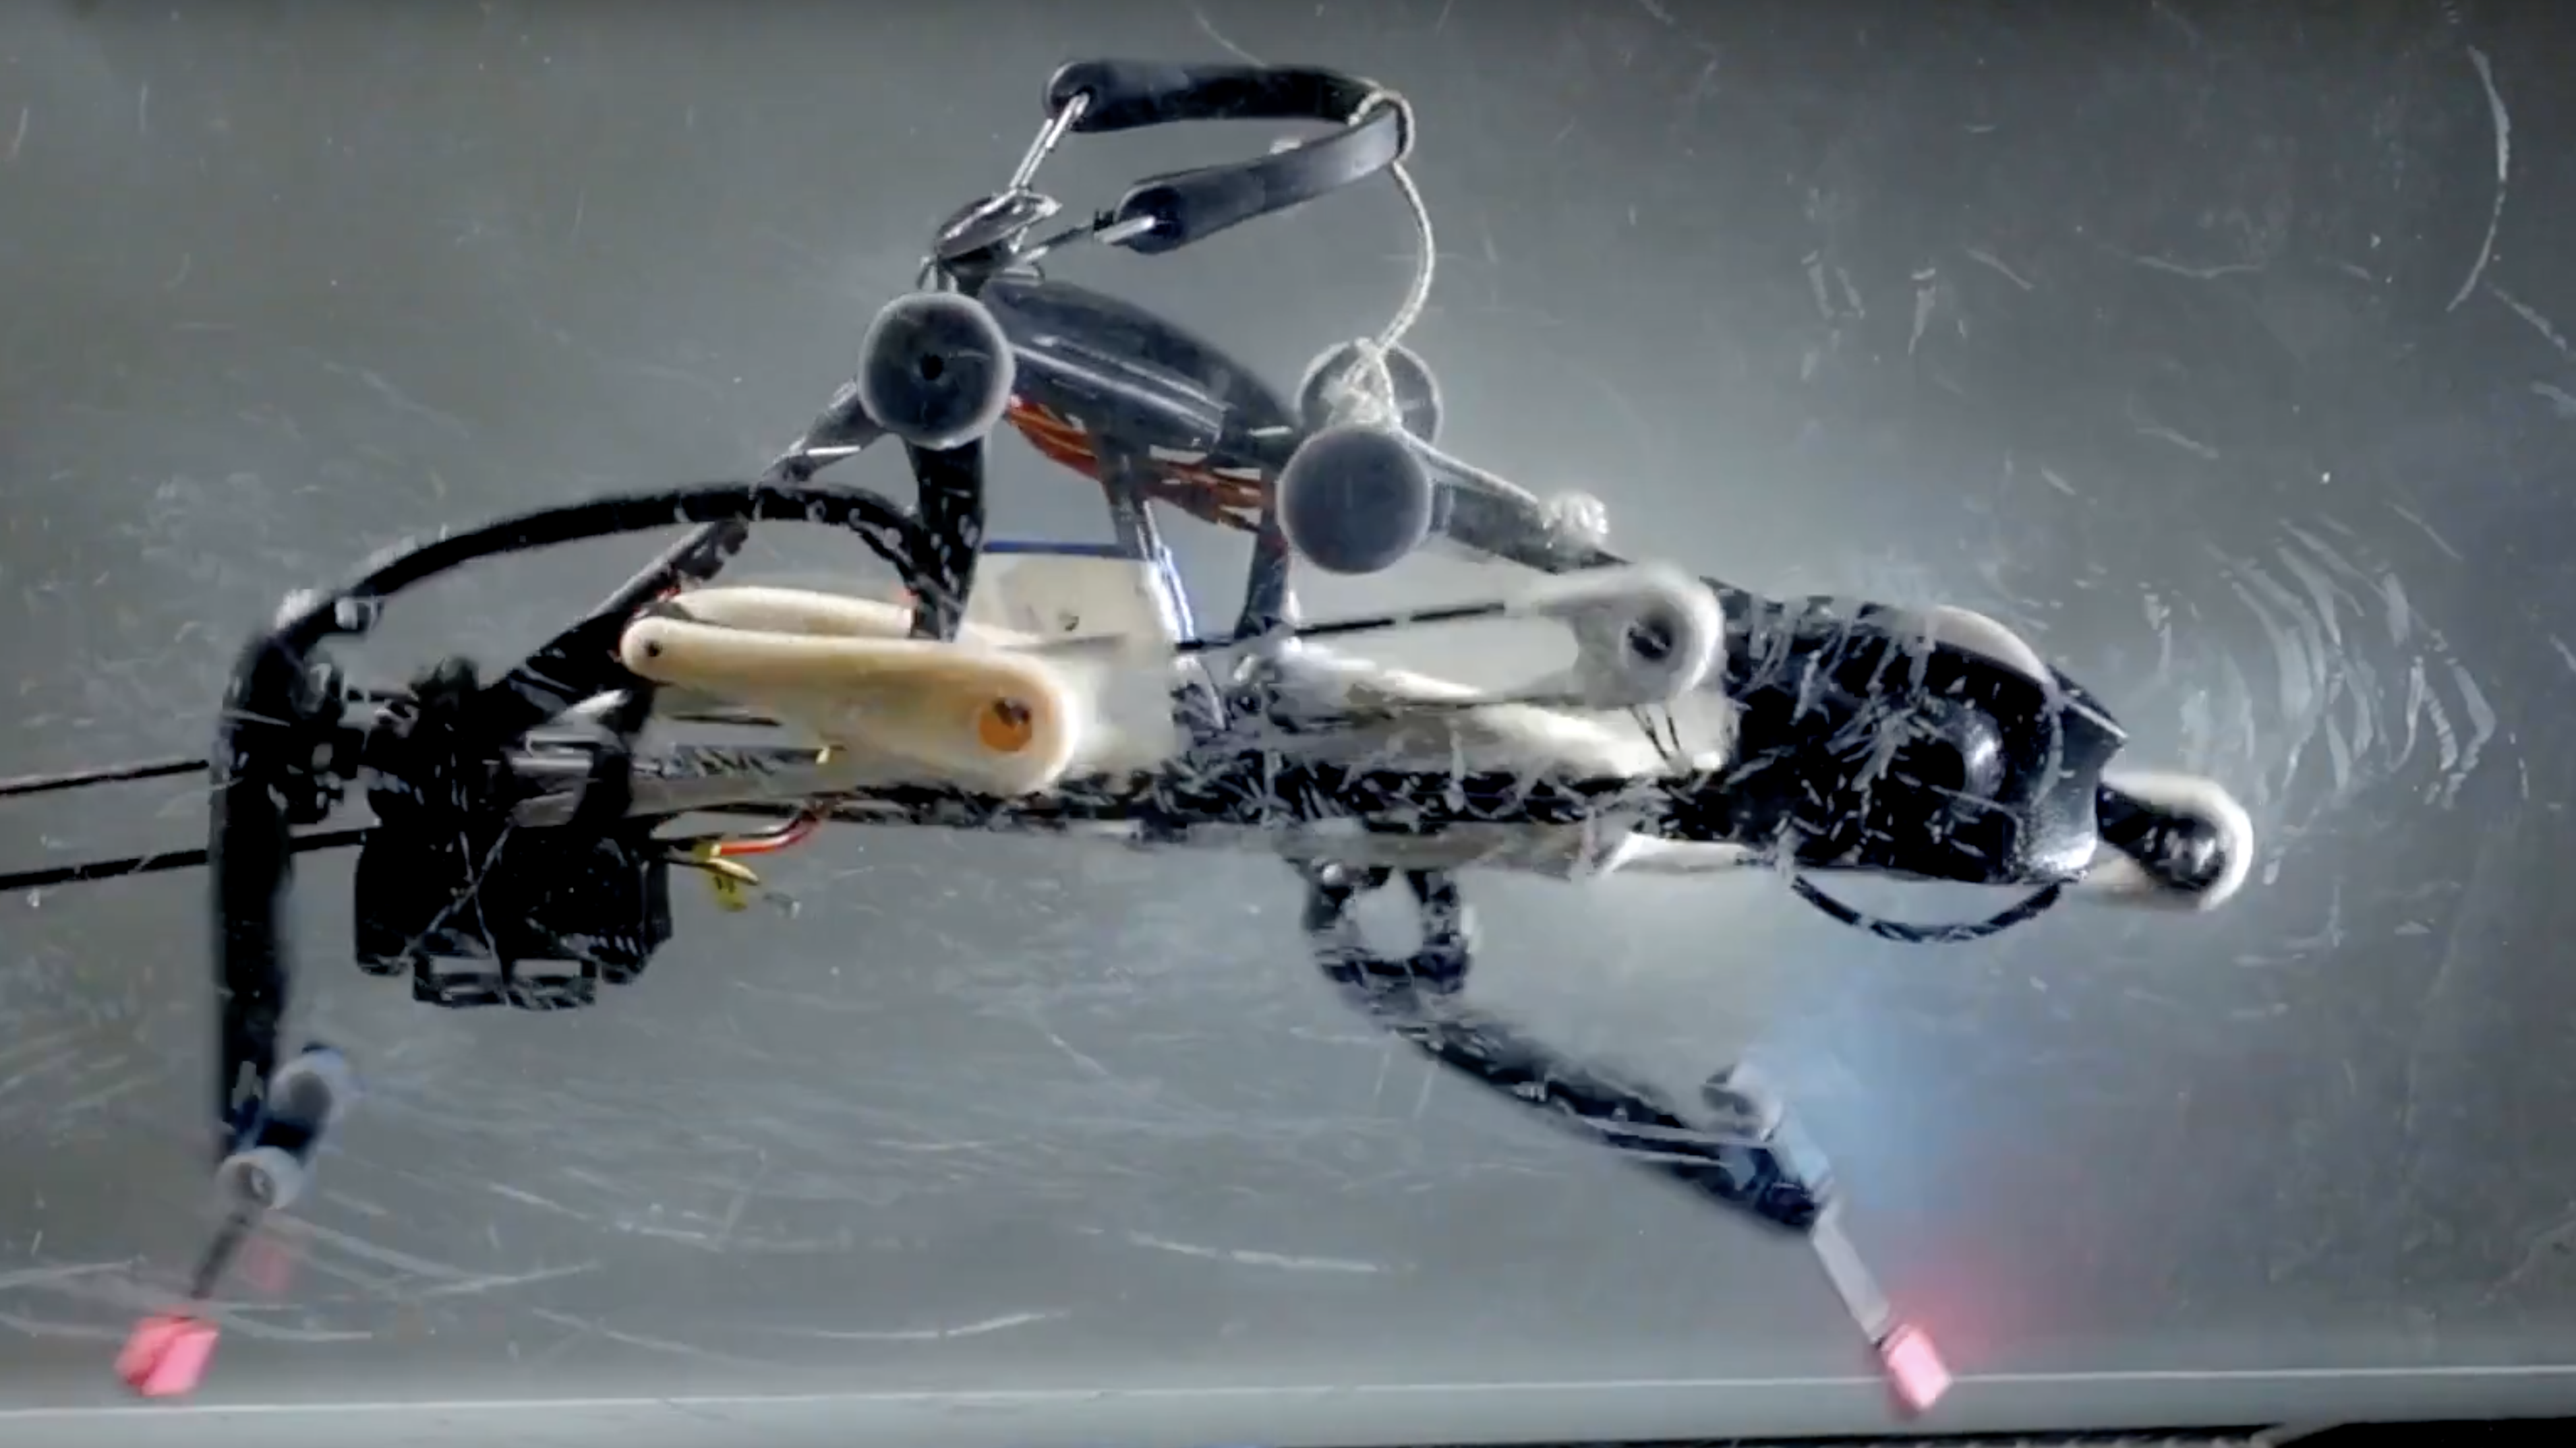 This ostrich-inspired robot is pushing the limits of legged locomotion